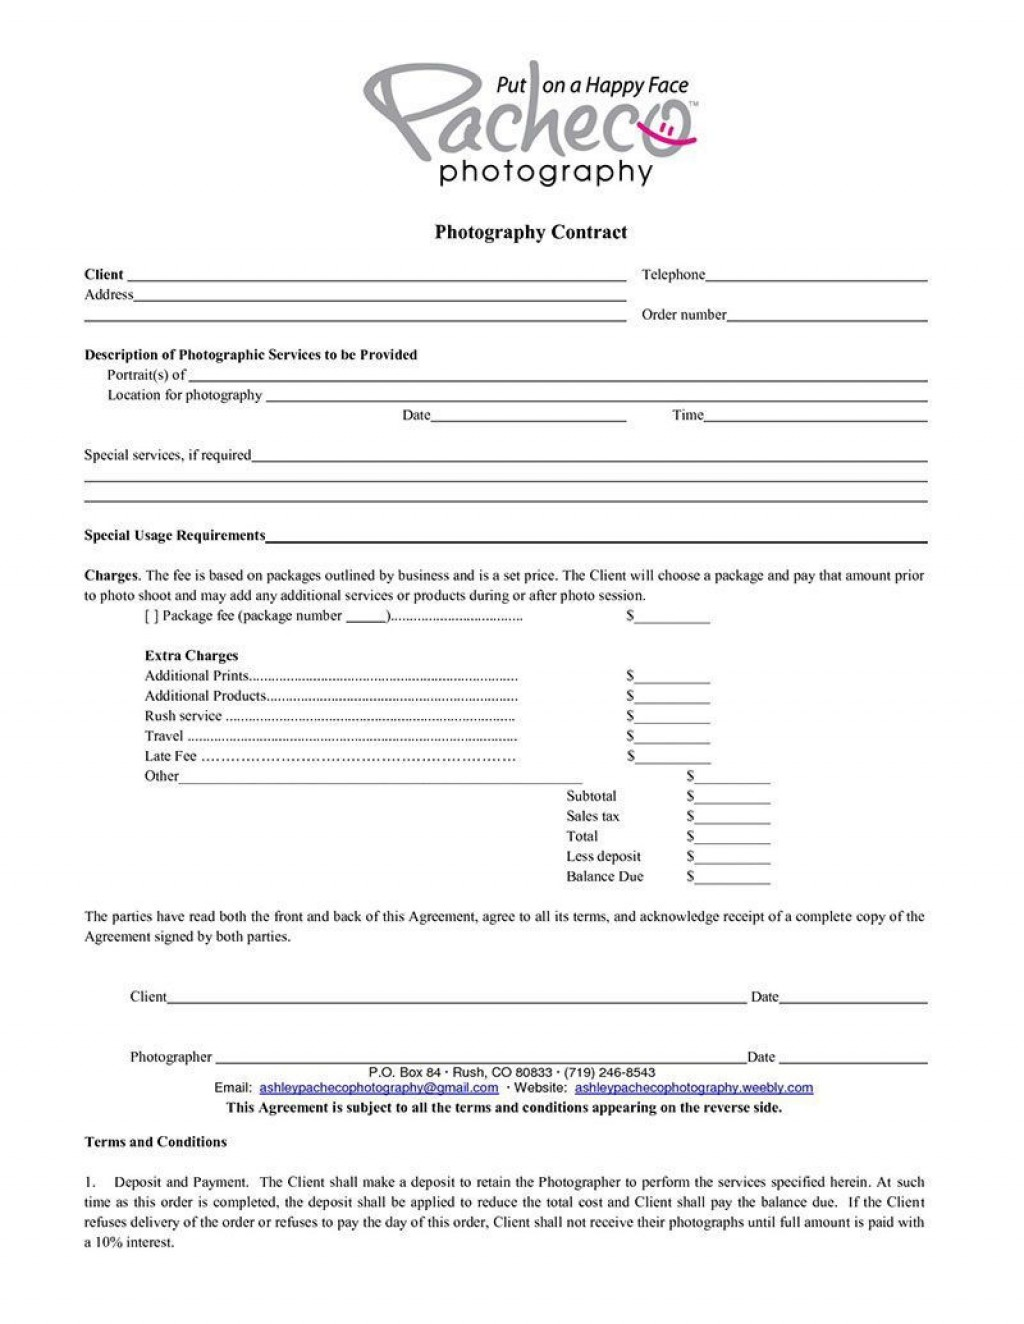 006 Surprising Wedding Photography Contract Template Canada High Definition Large